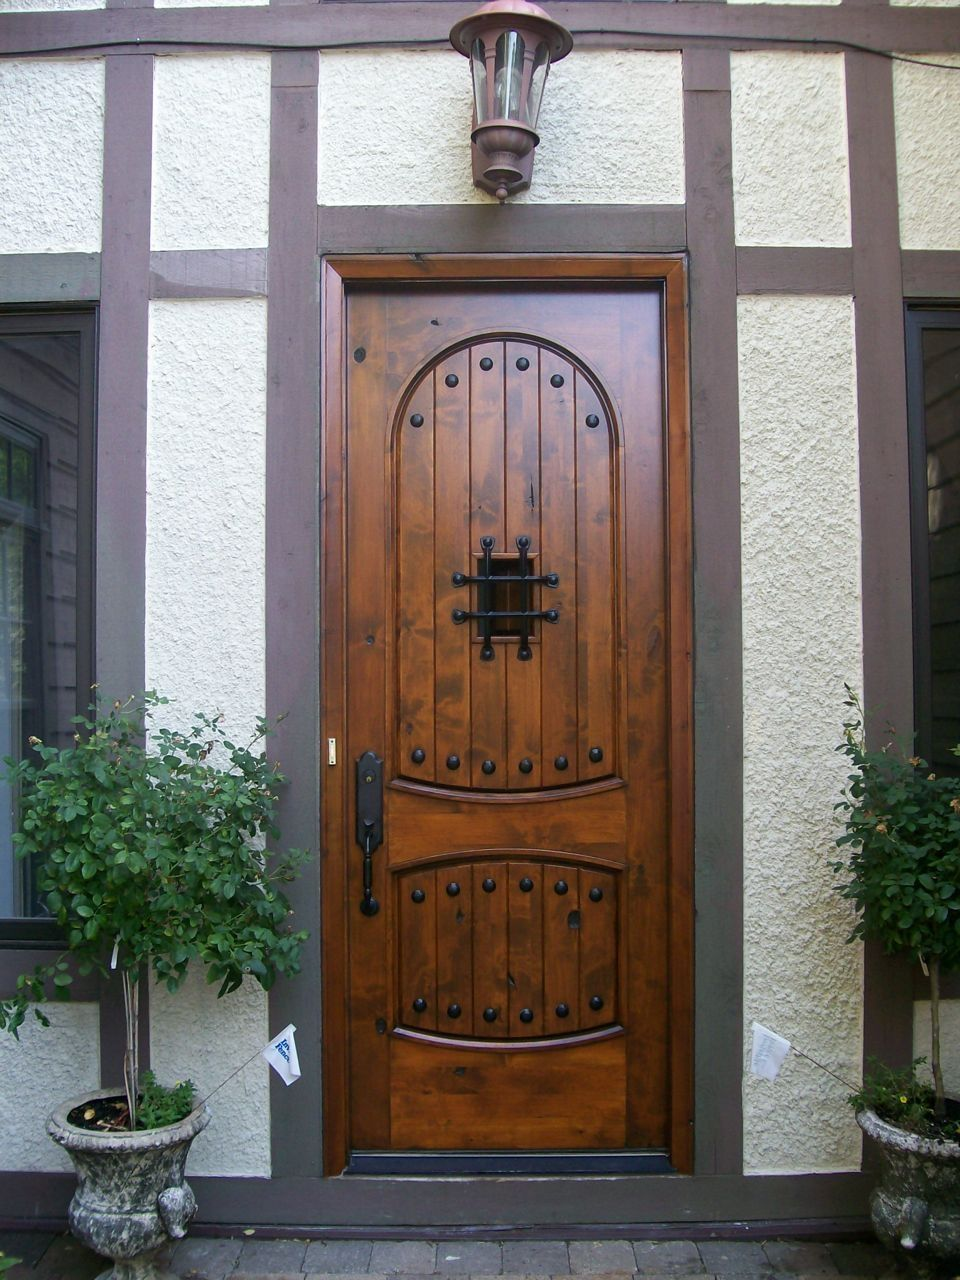 Pictures of houses with wood front doors thewrightstuff